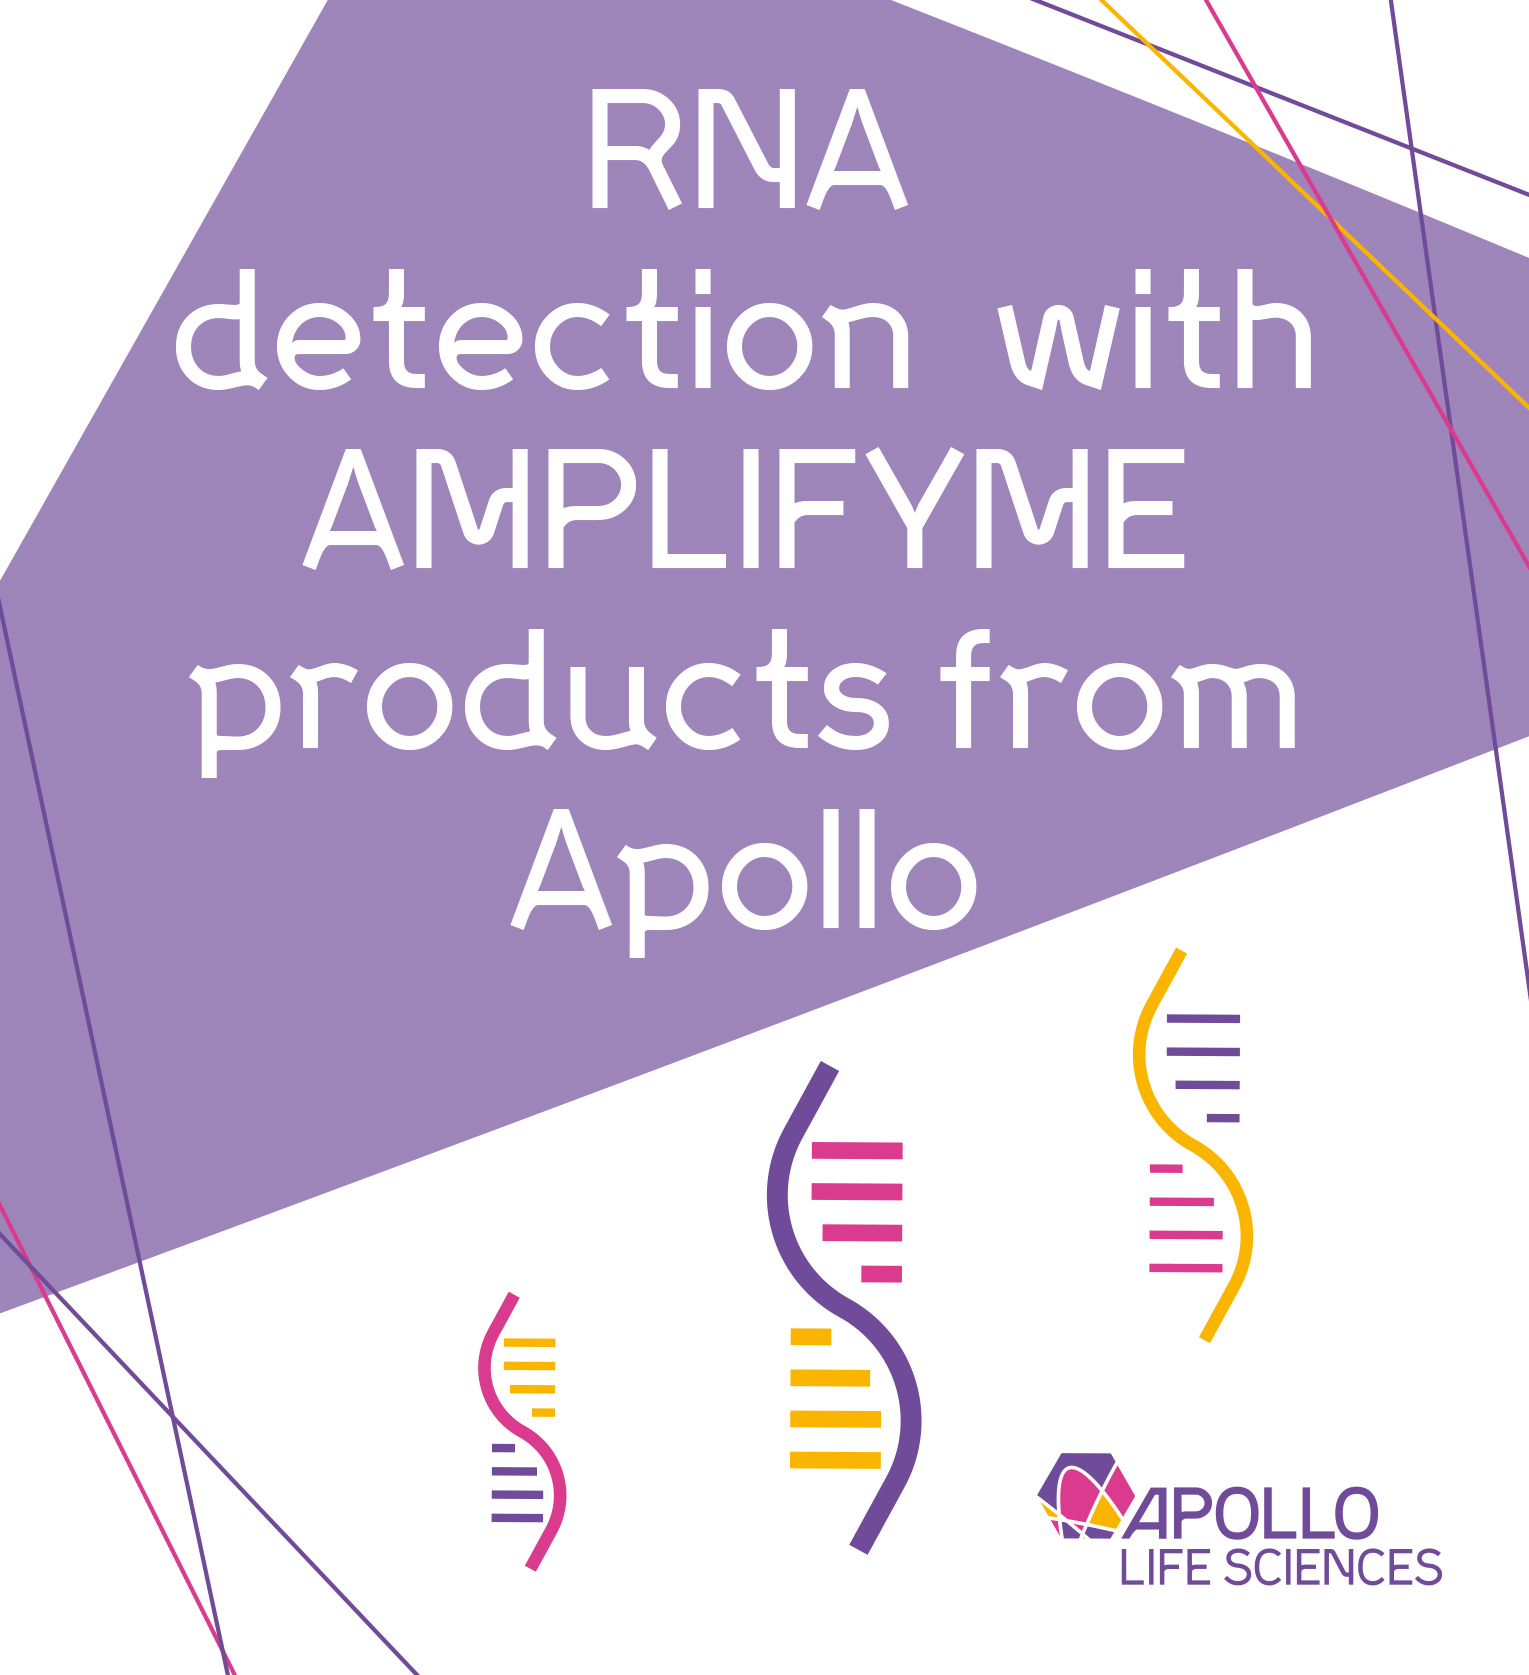 Improve RNA detection with AMPLIFYME products thumbnail image